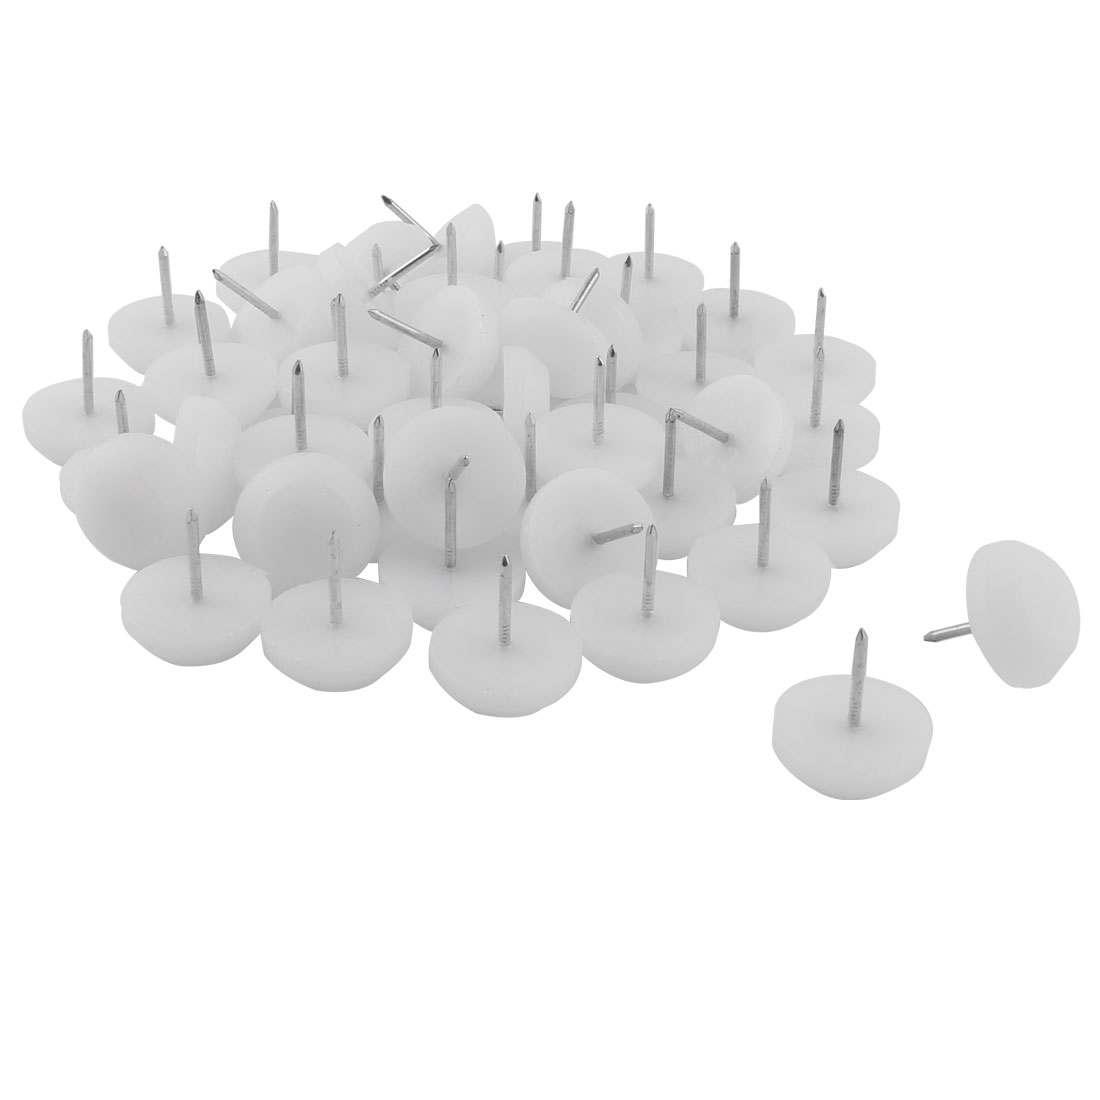 Furniture Table Chair Plastic Base Leg Floor Protector Nails Pad White 2.3cm Dia 50pcs